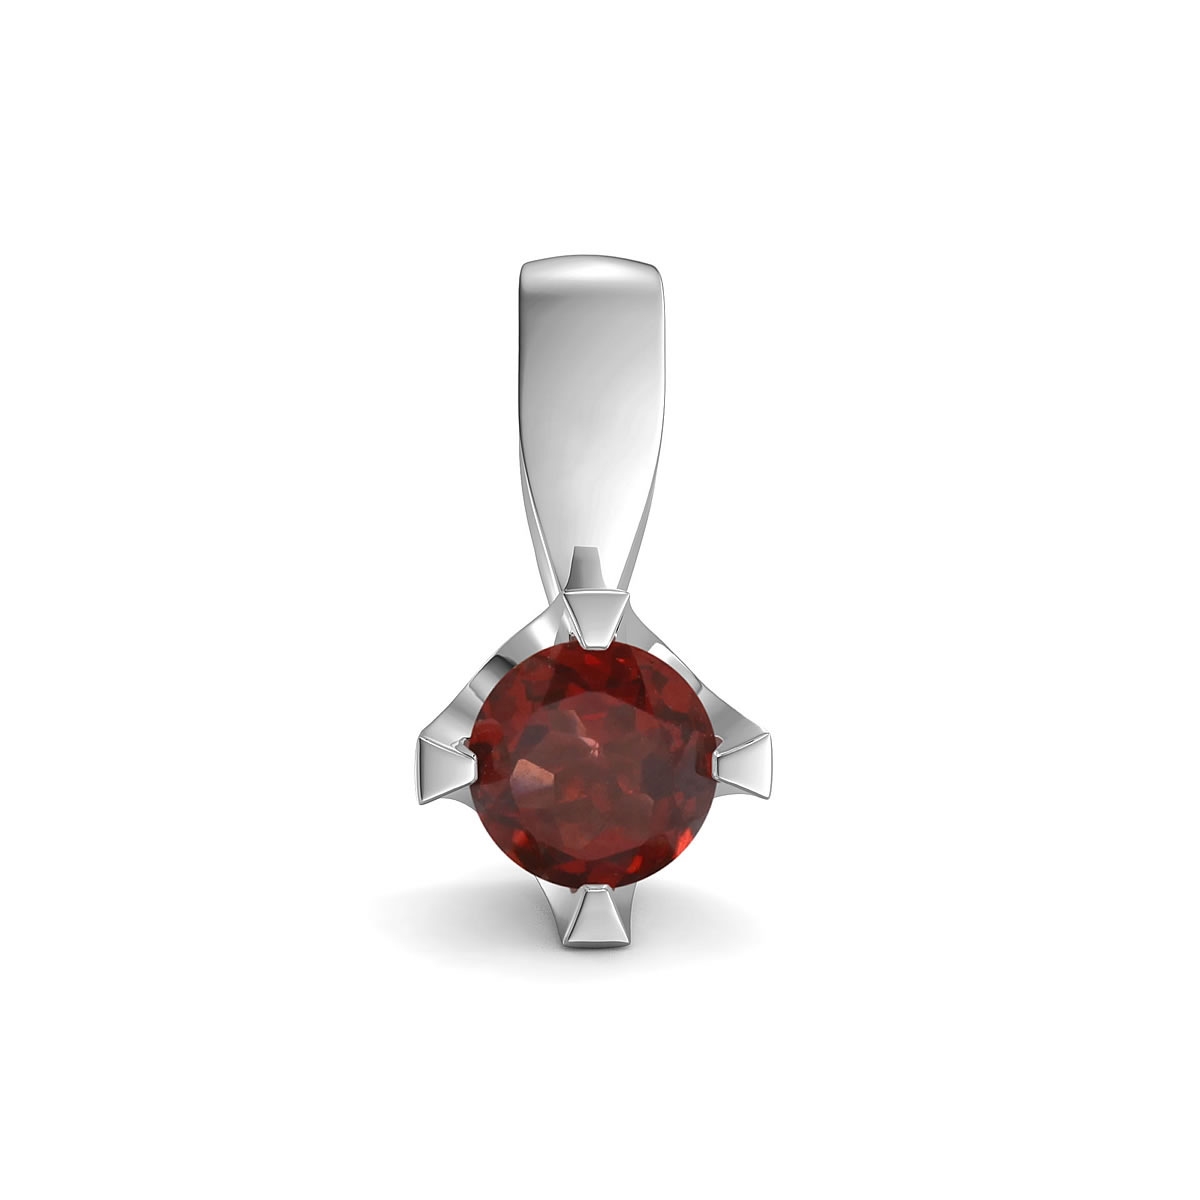 Elegant pendant in sterling silver with a garnet